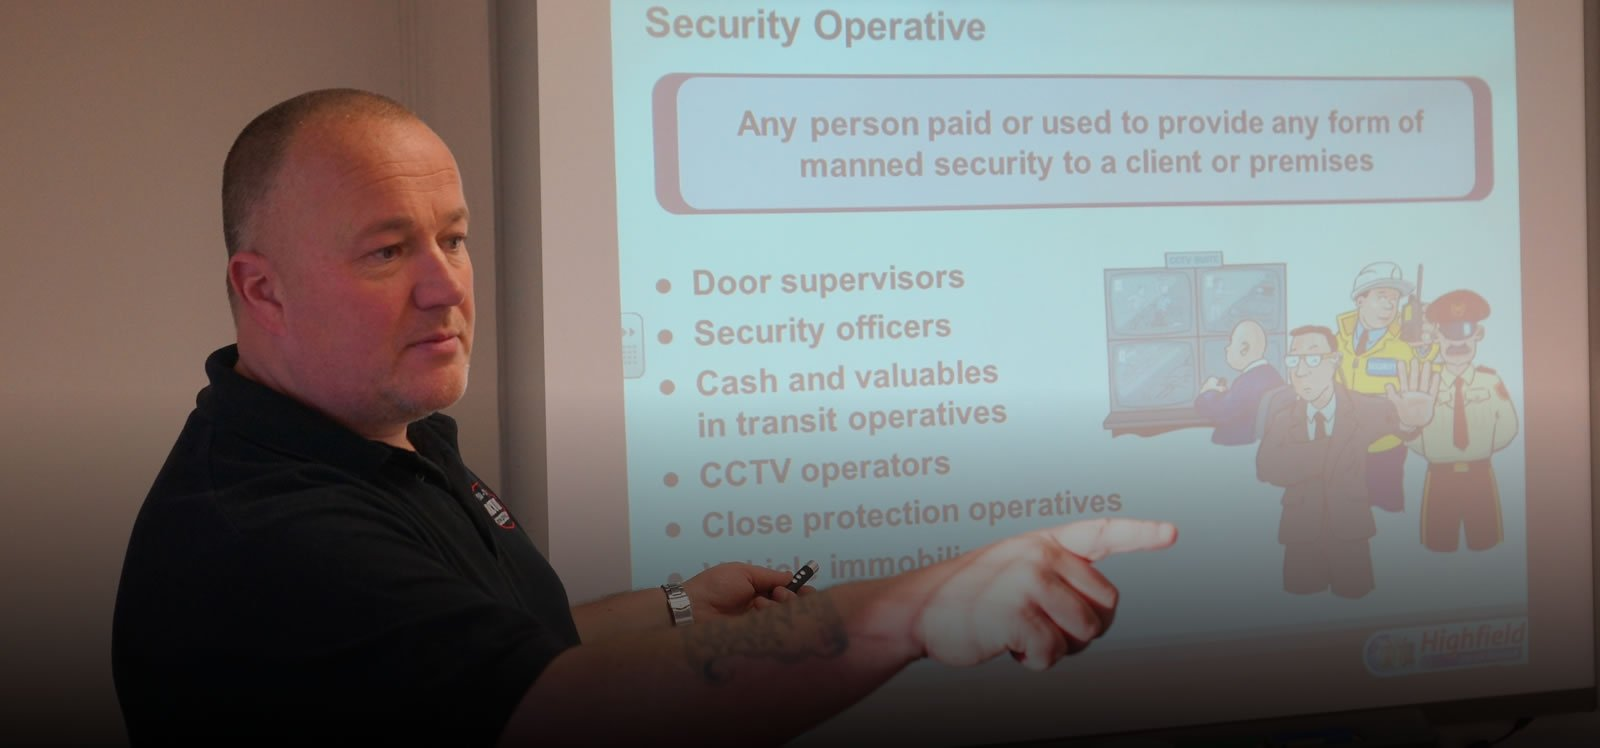 training for security offices in cumbria